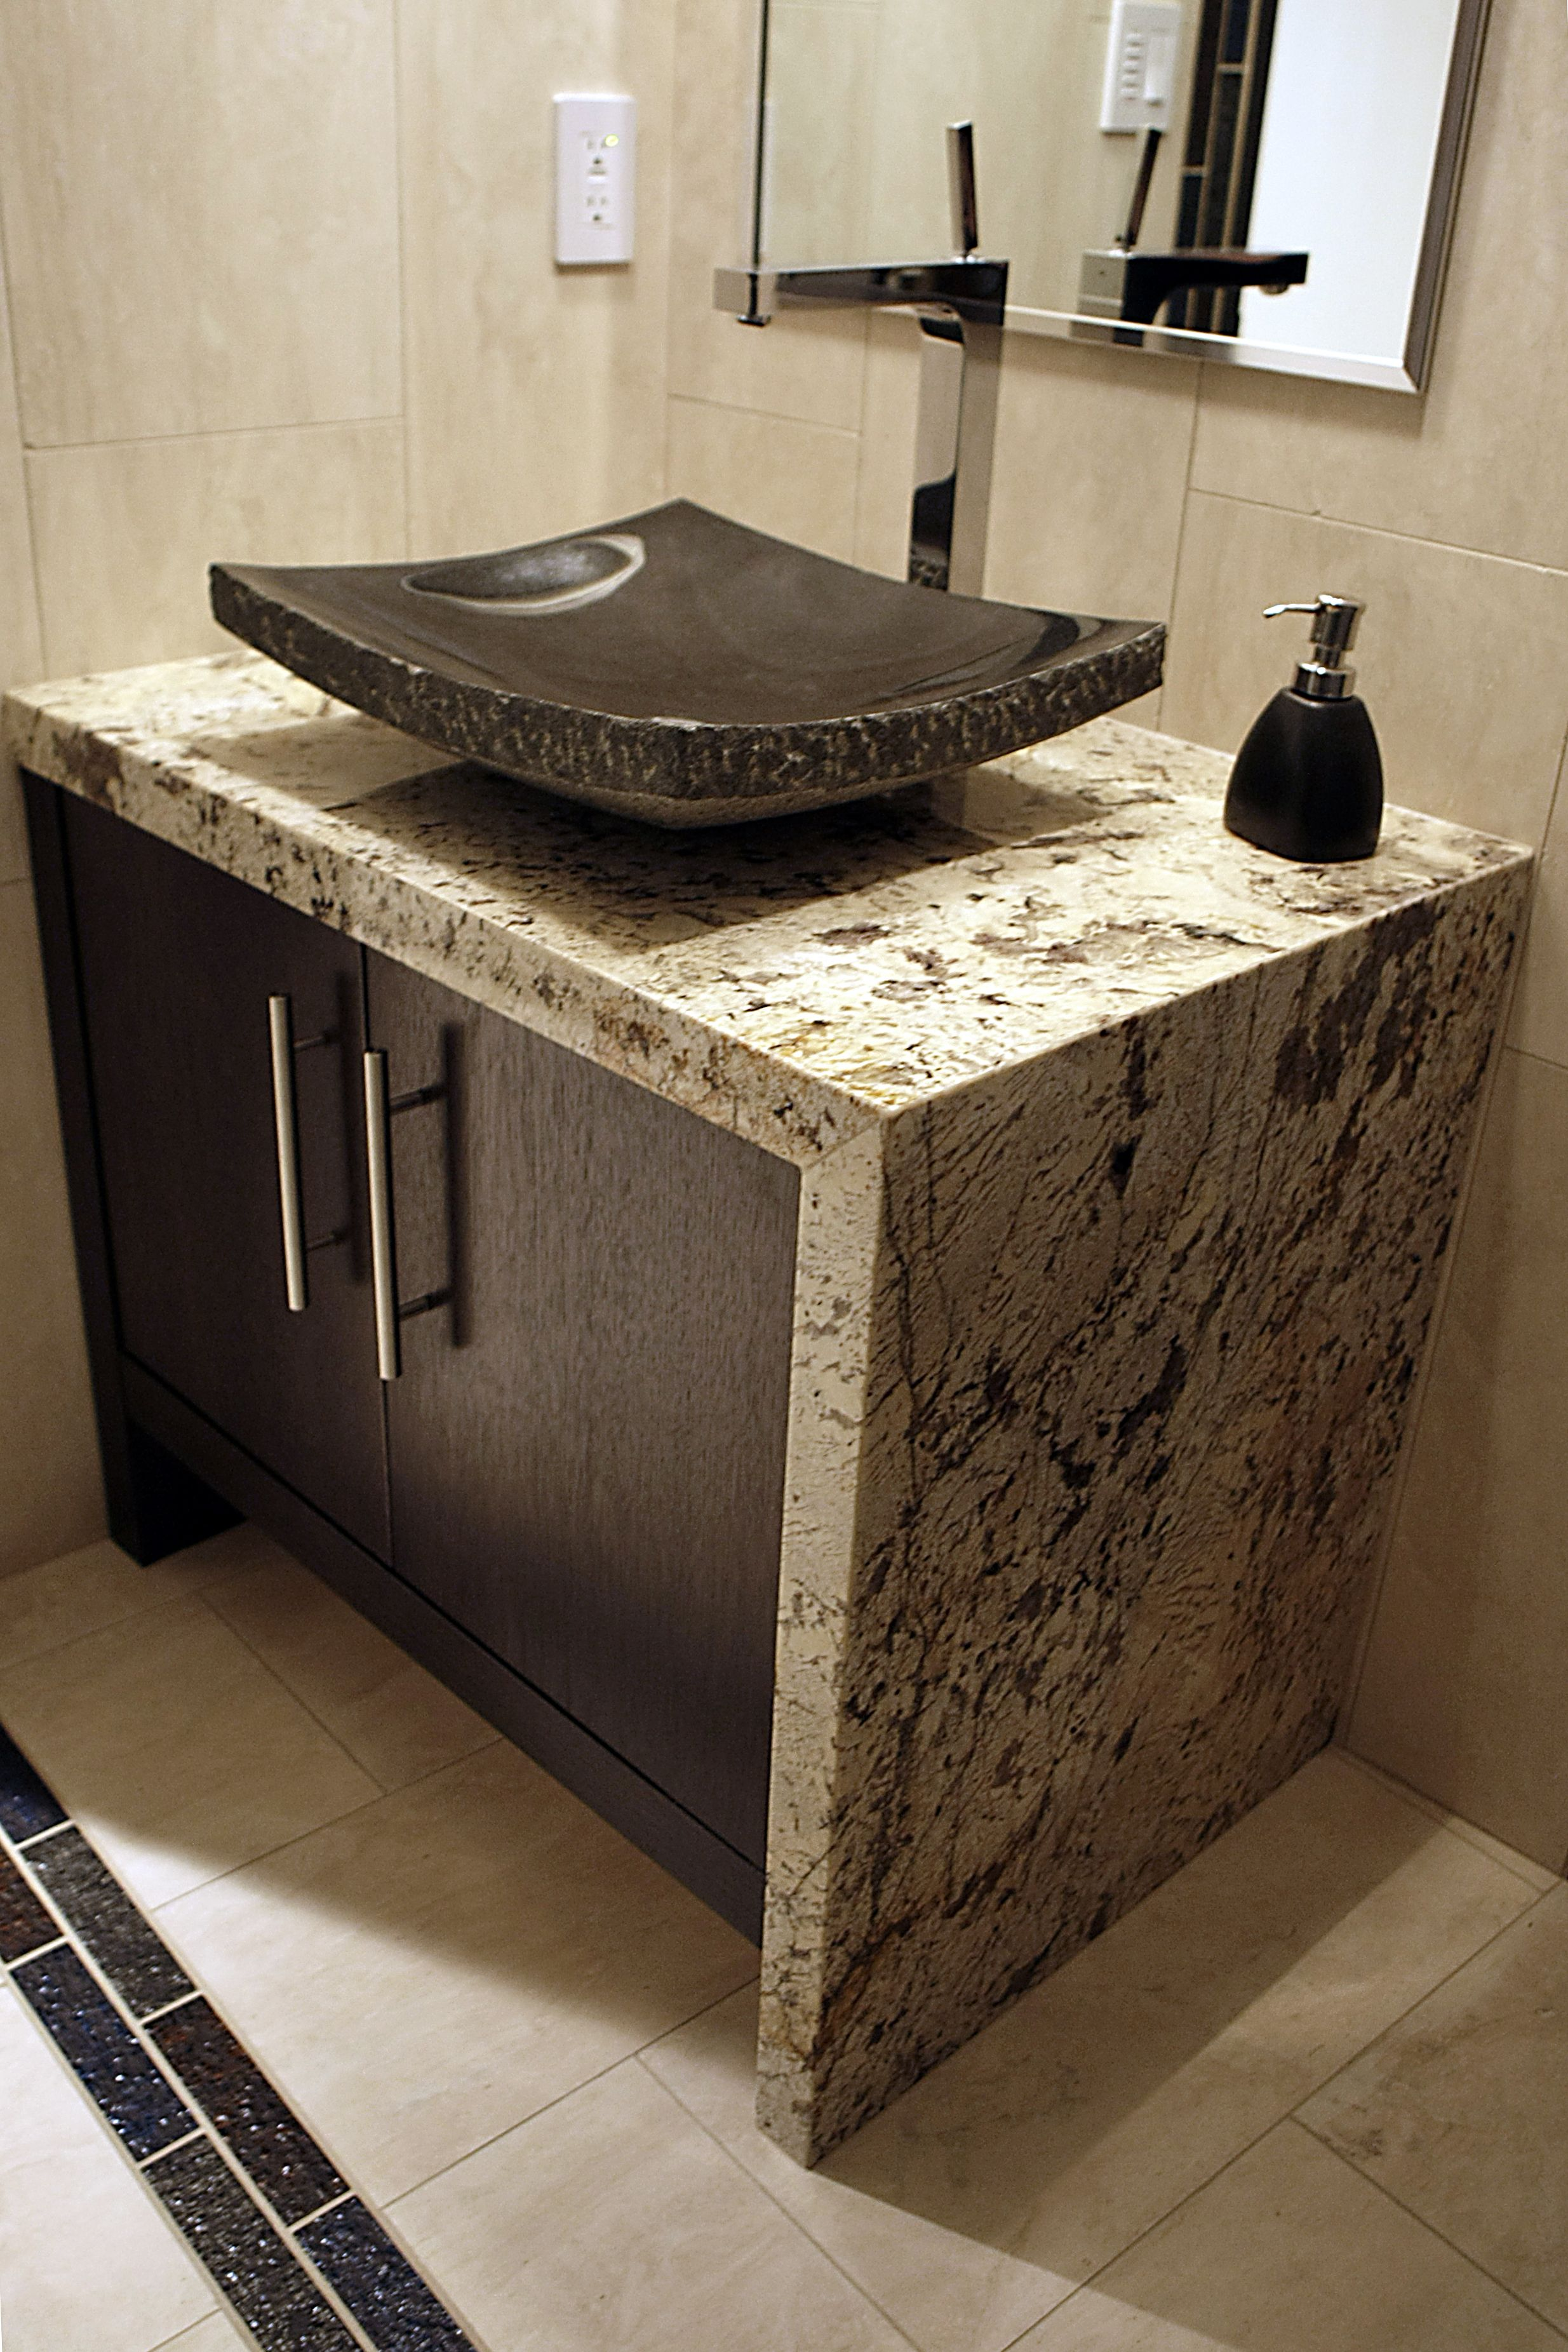 Vanity Top With Mitred Waterfall Edge And Vessel Sink In Delicatus